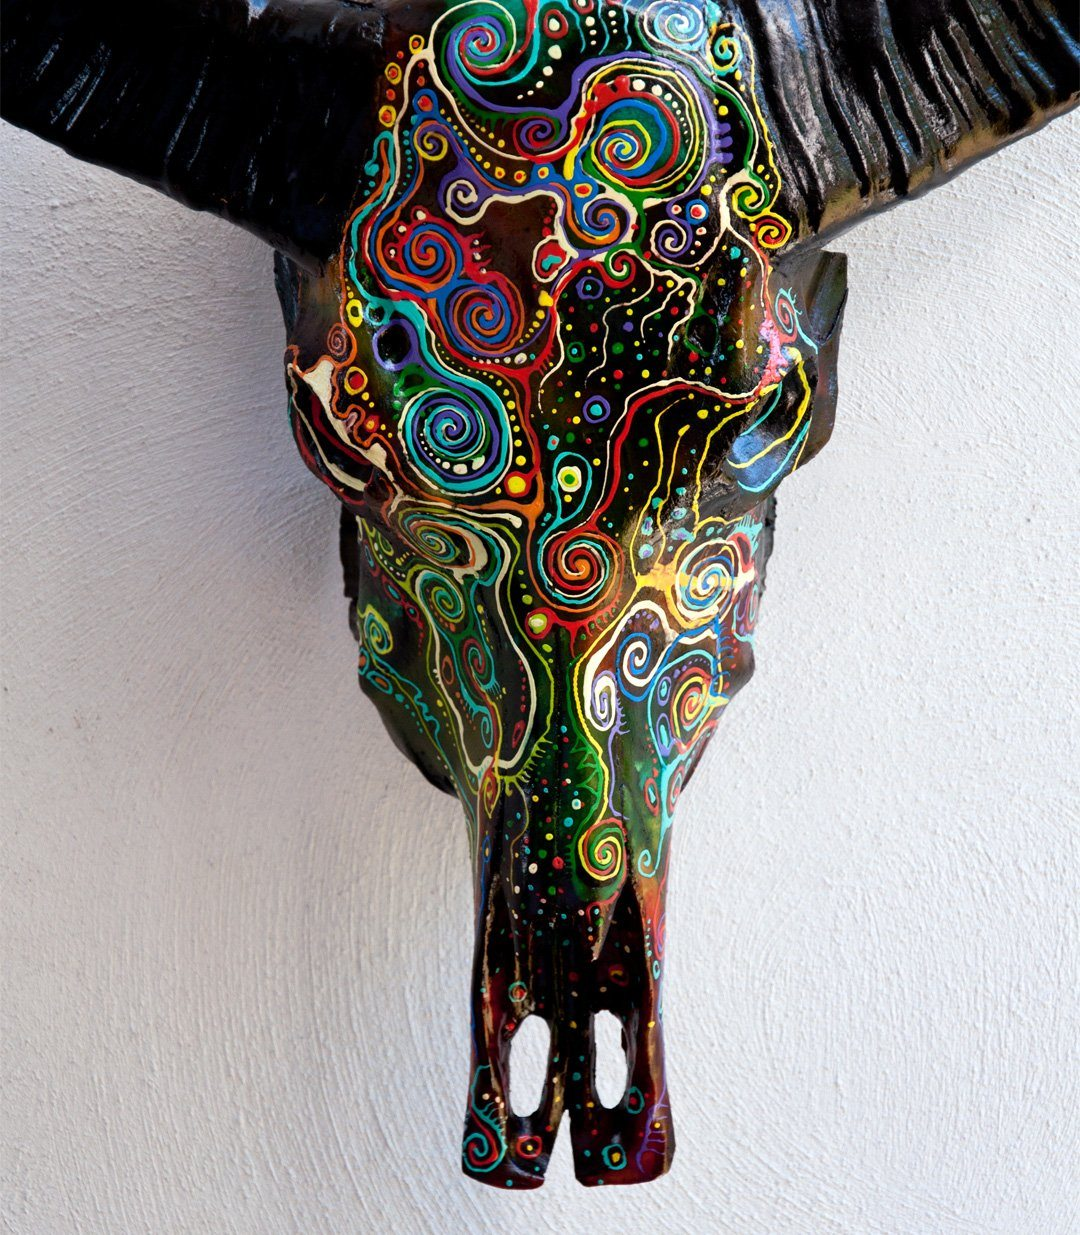 KERI resin cow skull - arts - ARVA Living